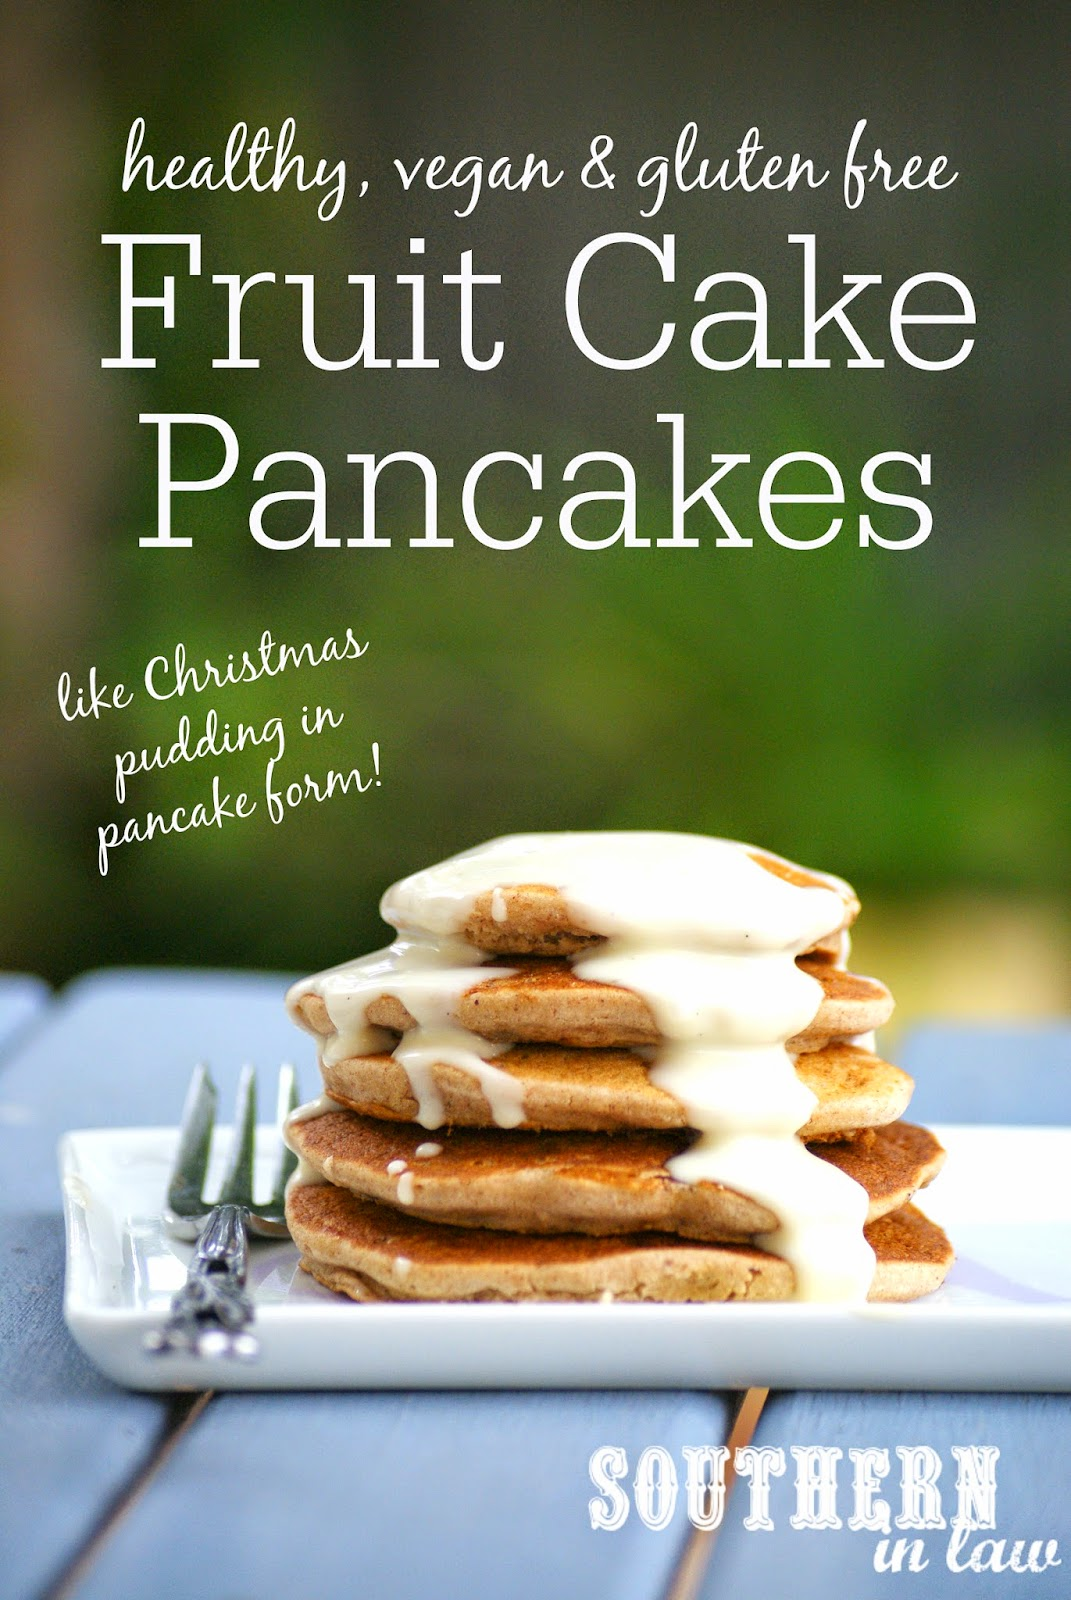 Vegan Fruit Cakes Pancakes Recipe for Christmas - low fat, gluten free, vegan, healthy, sugar free, dairy free, egg free